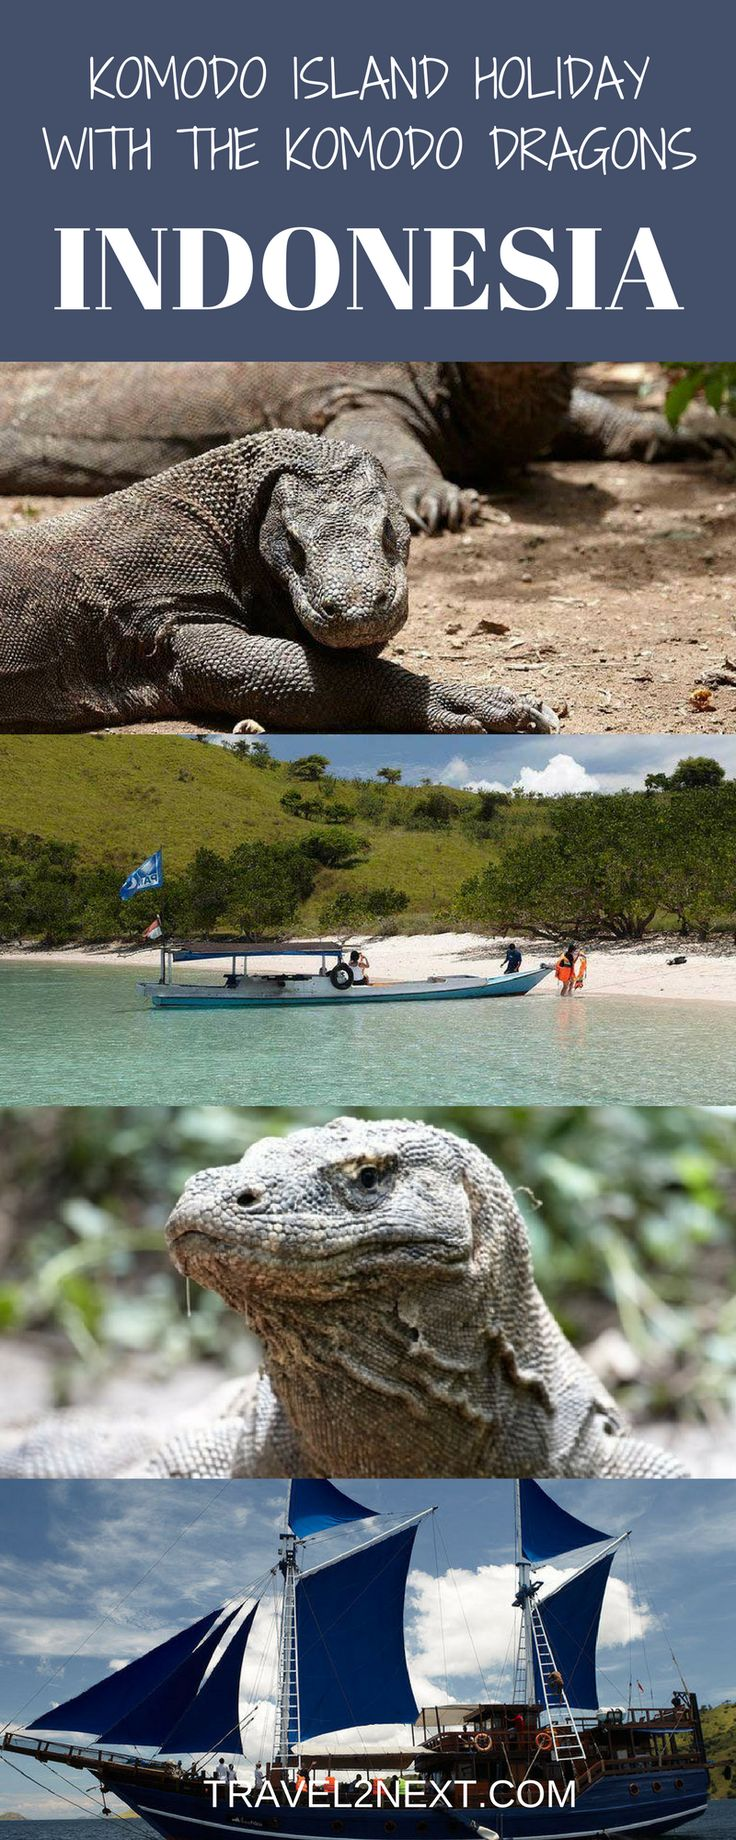 Komodo Island Holiday With The Komodo Dragons. Where to Komodo dragons live? Next time you're thinking of booking a trip to Bali, consider extending your holiday to Flores.